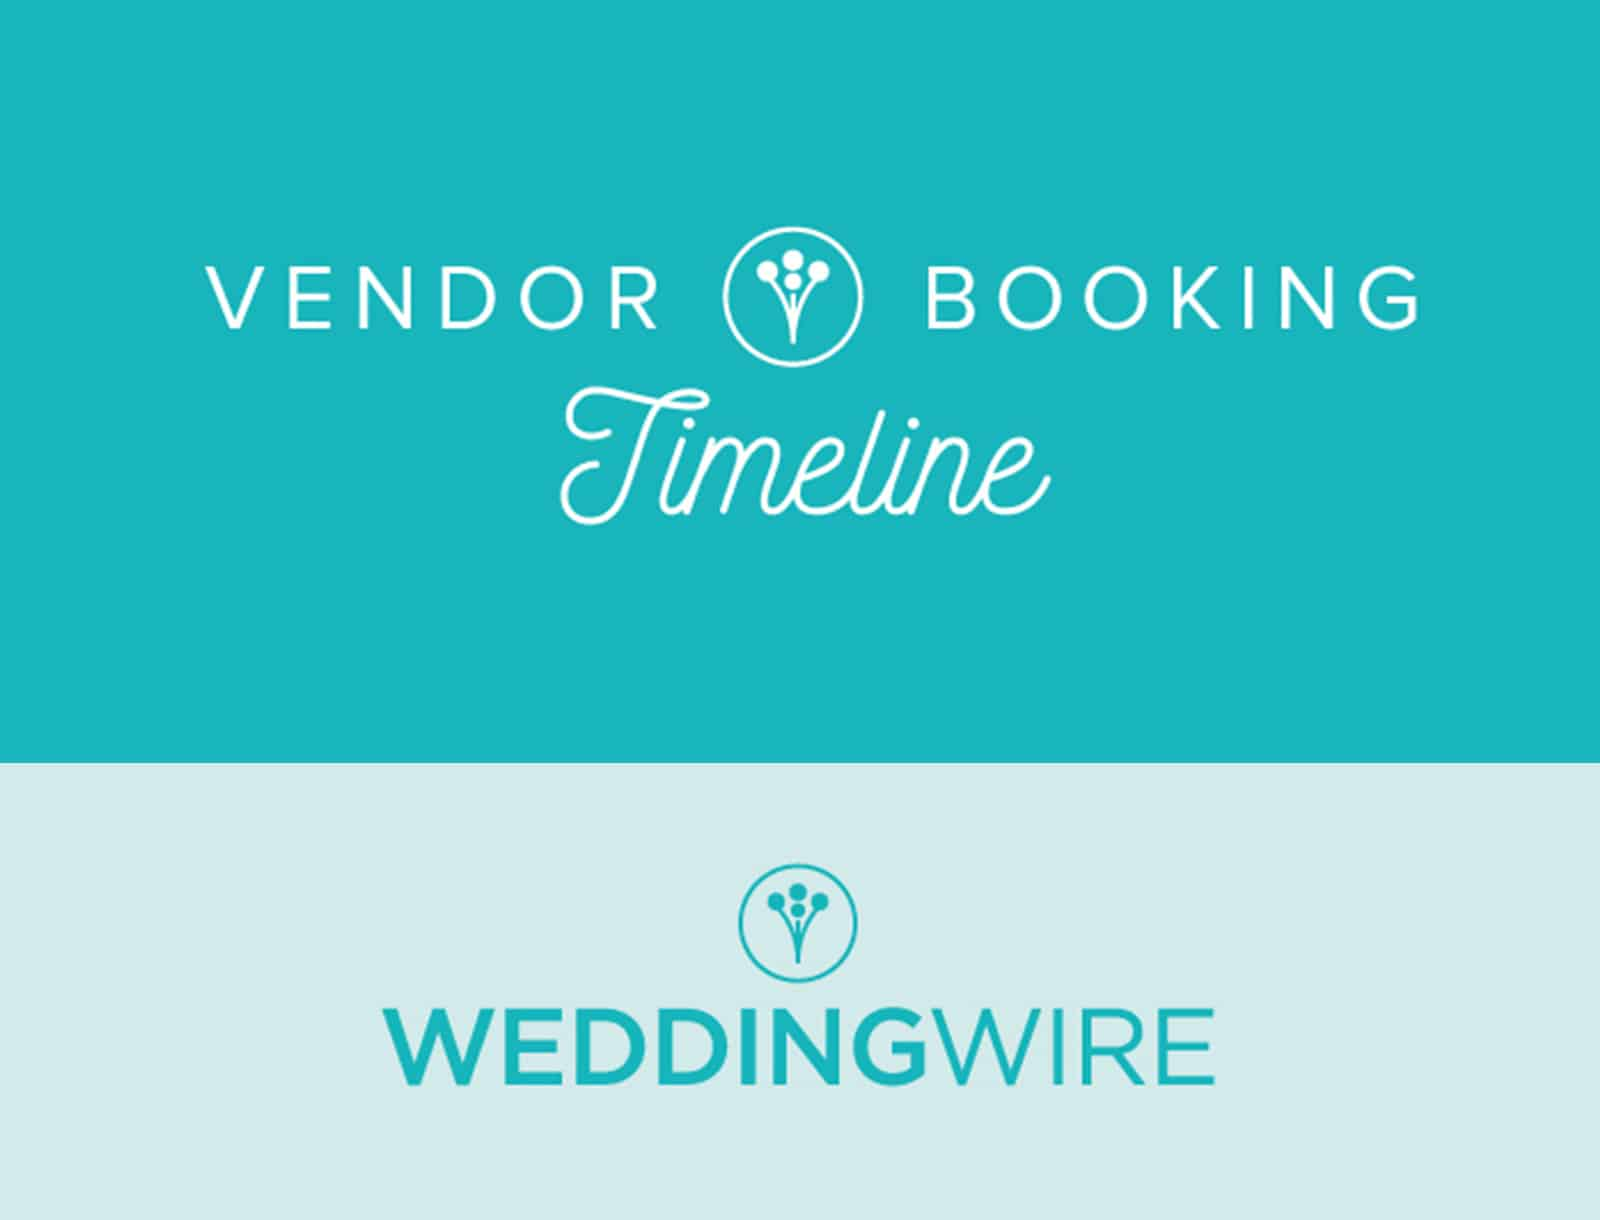 When Should You Book Your Wedding Vendors: A Timeline Guide